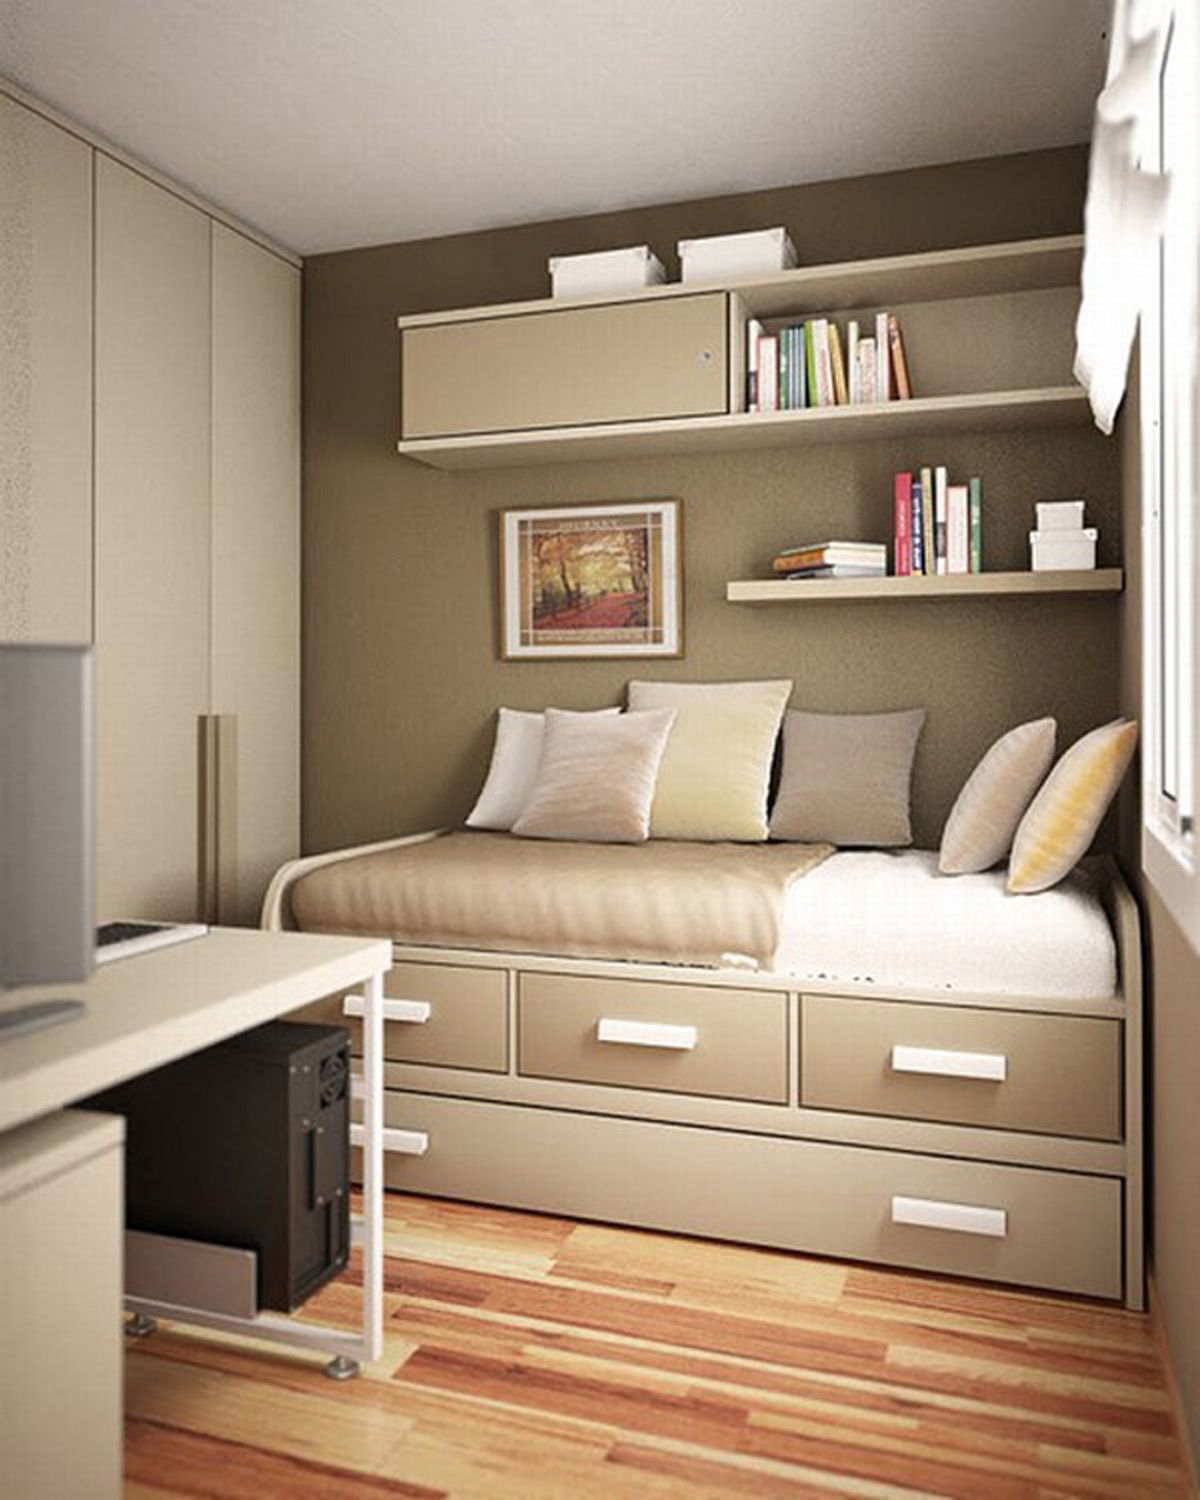 contemporary small bedroom ideas - Small Bedroom Design Idea